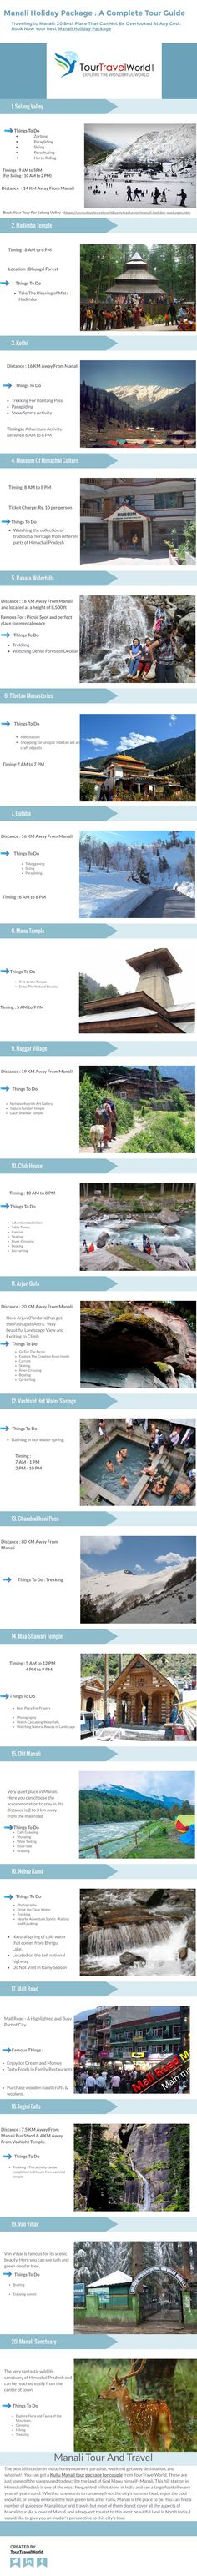 Get a diverse range of Manali Tour Packages @ TourTravelWorld. Book now one of the best Kullu Manali holiday packages, Manali honeymoon tour packages in 2930 available packages. Honeymoon Tour Packages, Kullu Manali, India Gate, Leh Ladakh, Famous Places, Group Tours, Tour Guide, Tourism, How To Memorize Things